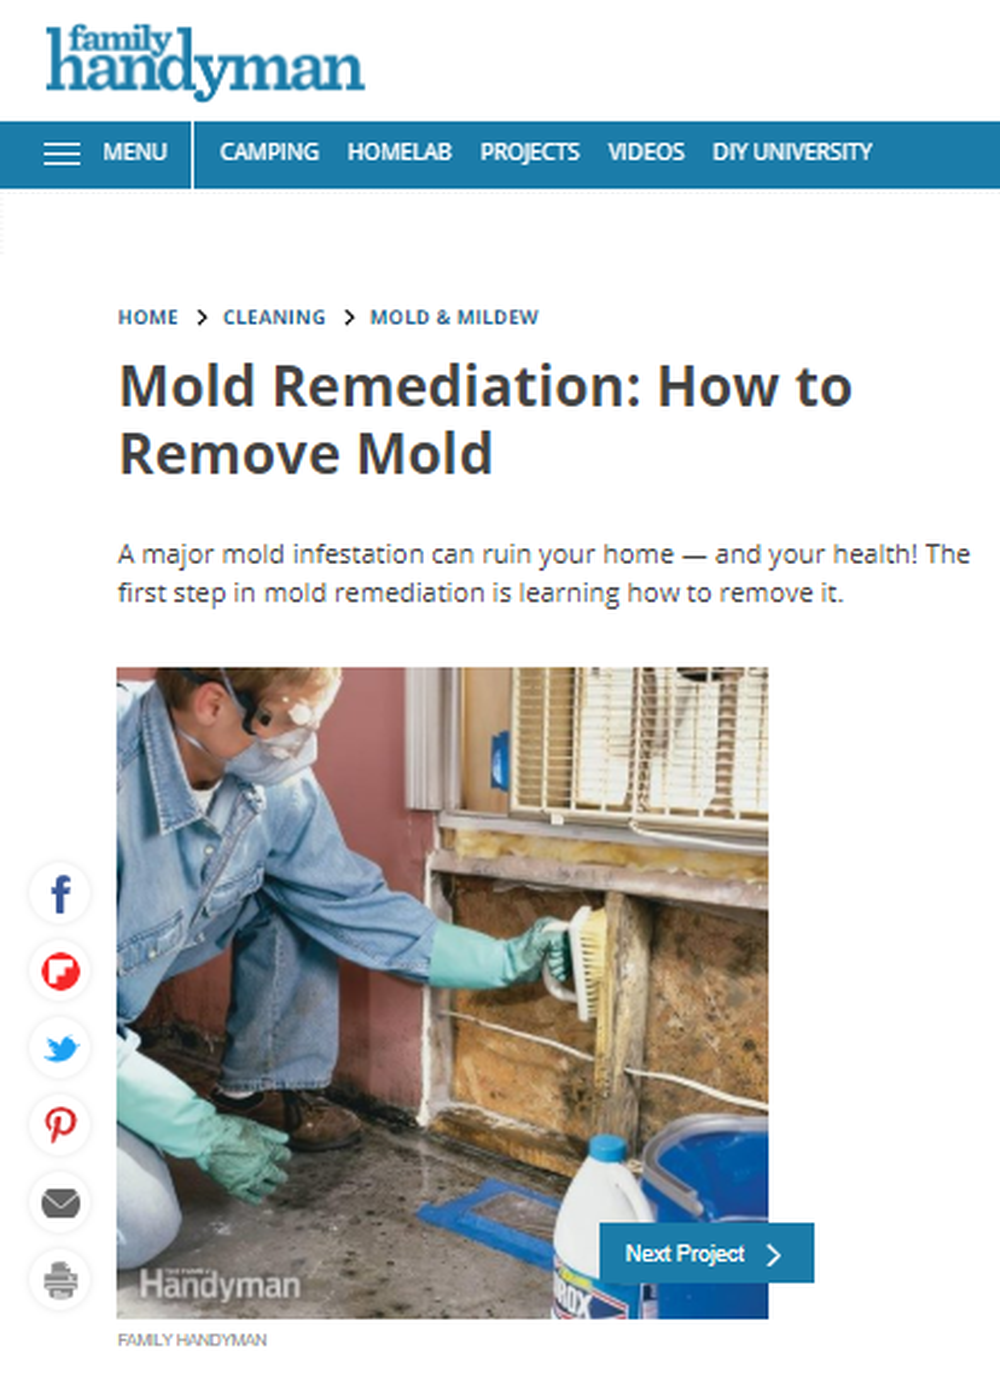 How_To_Remove_Mold_Mold_Remediation_—_The_Family_Handyman.png